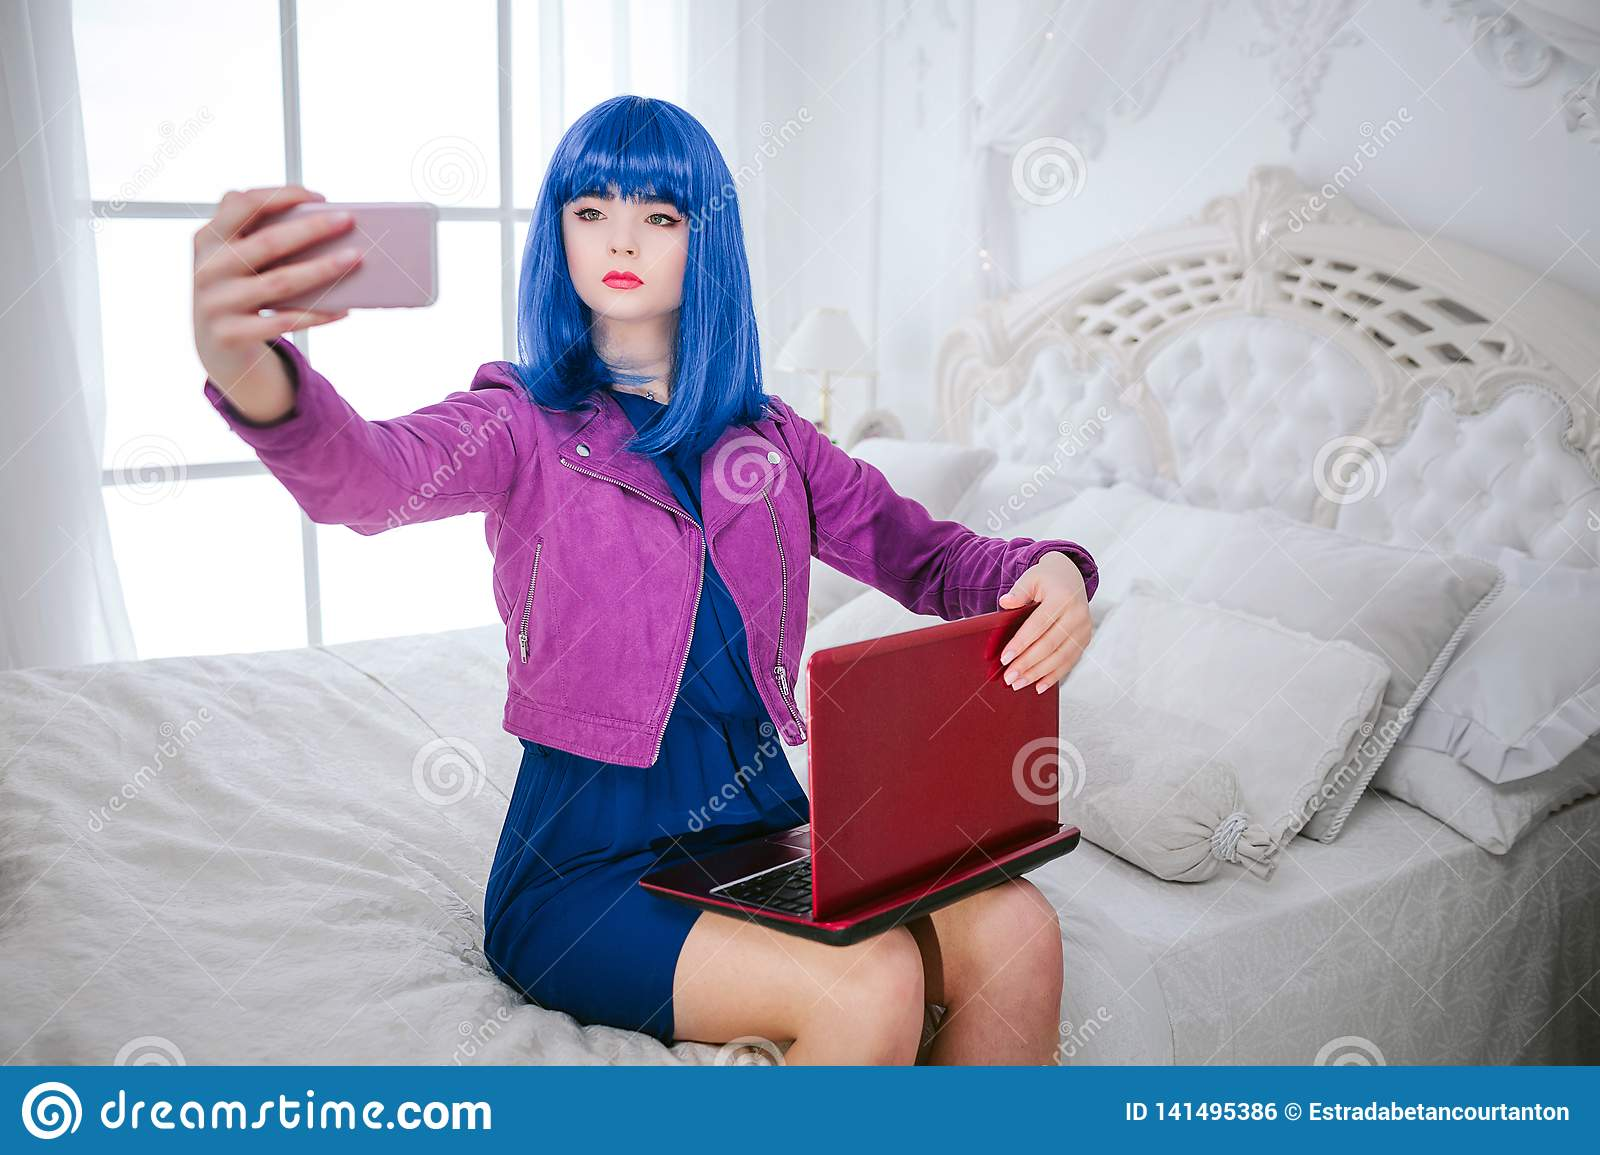 Fashion freak. Glamour emotionless synthetic girl, fake doll with blue hair is holding computer and doing selfie while